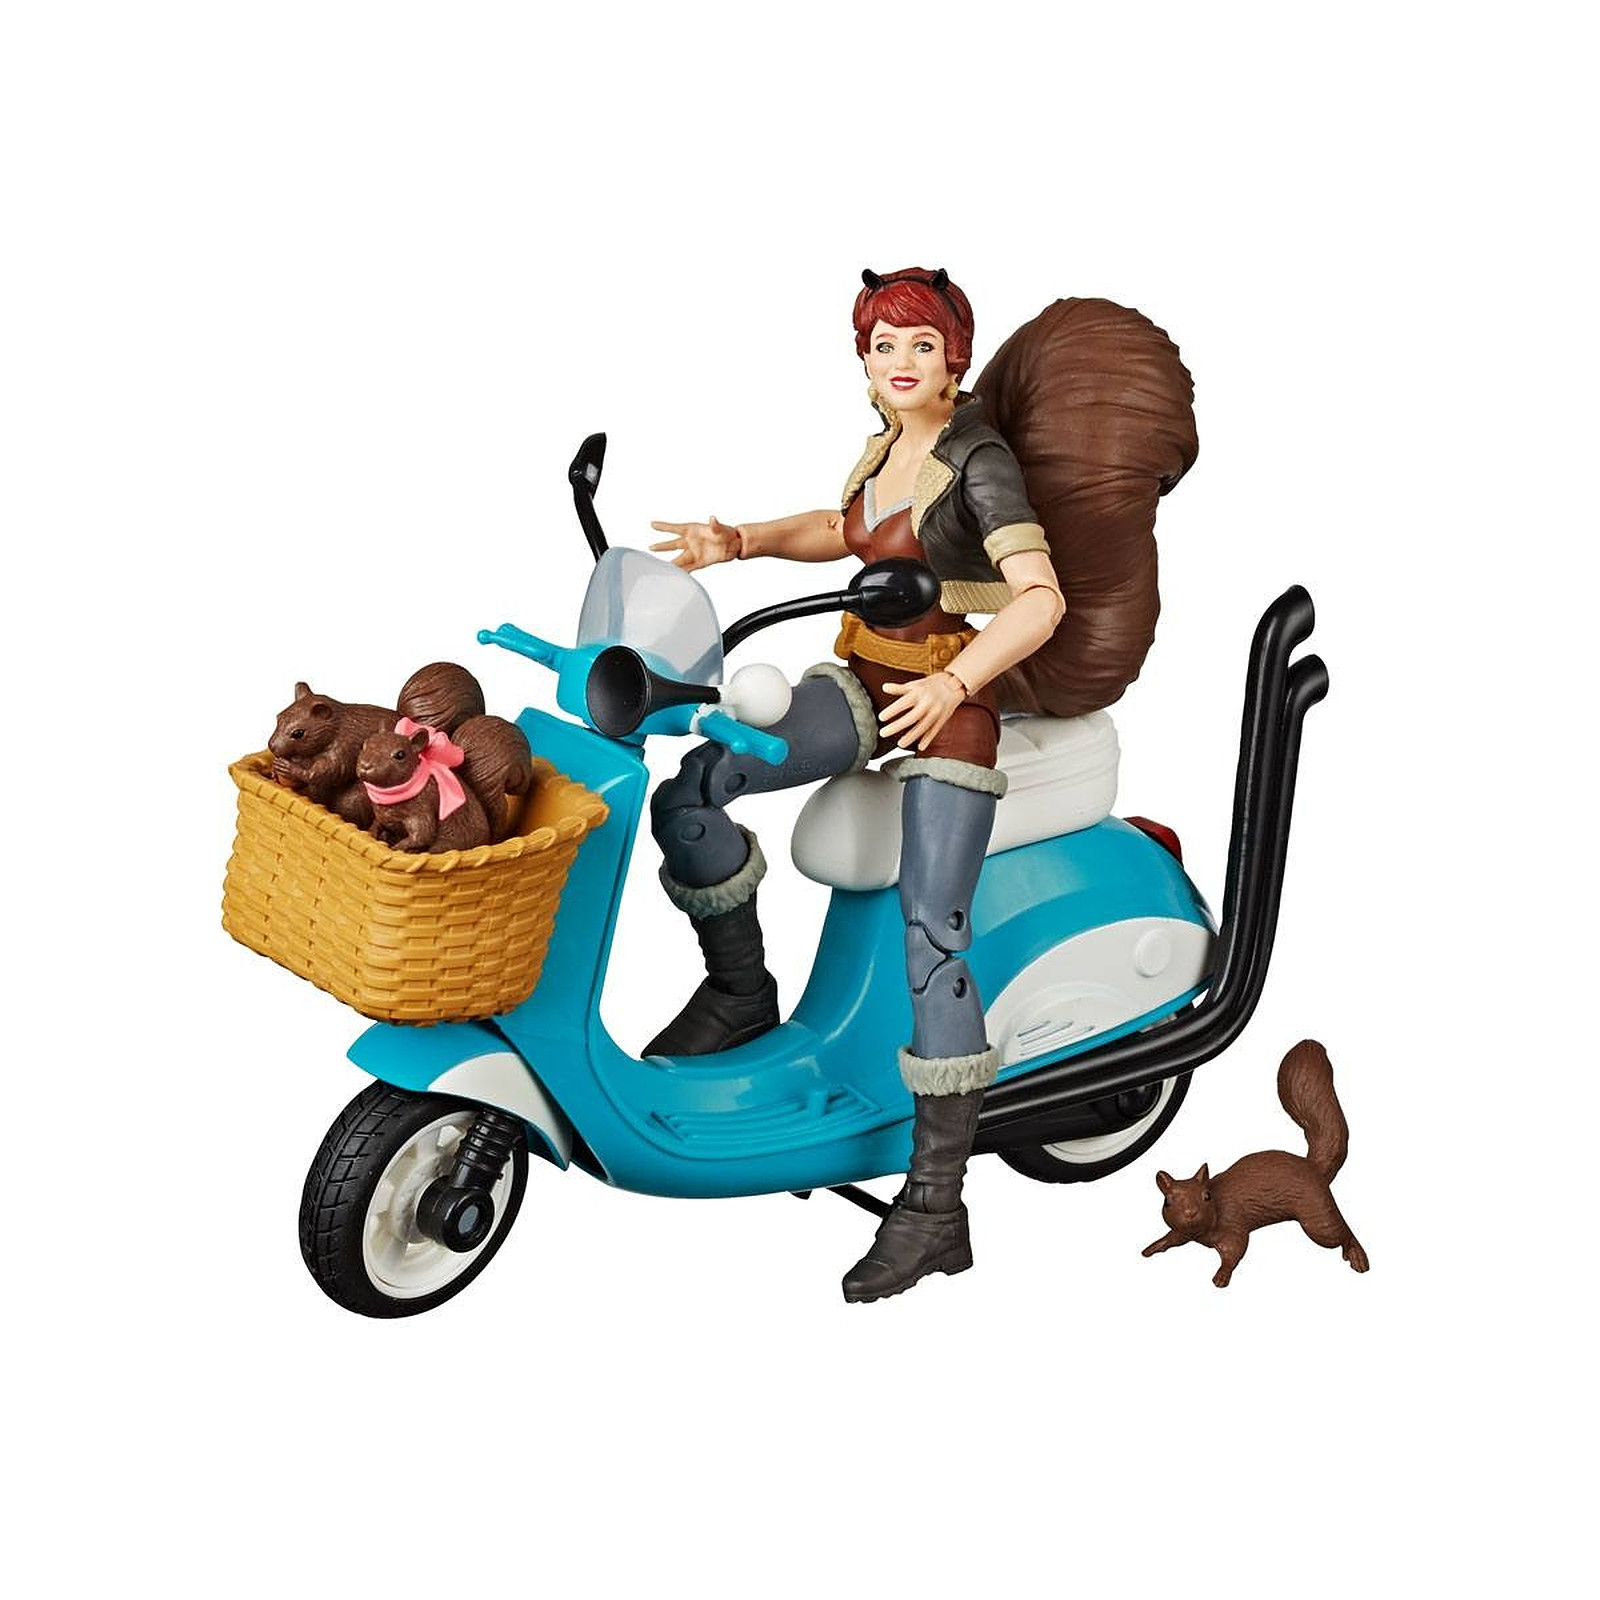 Marvel Legends Series - Figurine avec véhicule Squirrel Girl 15 cm